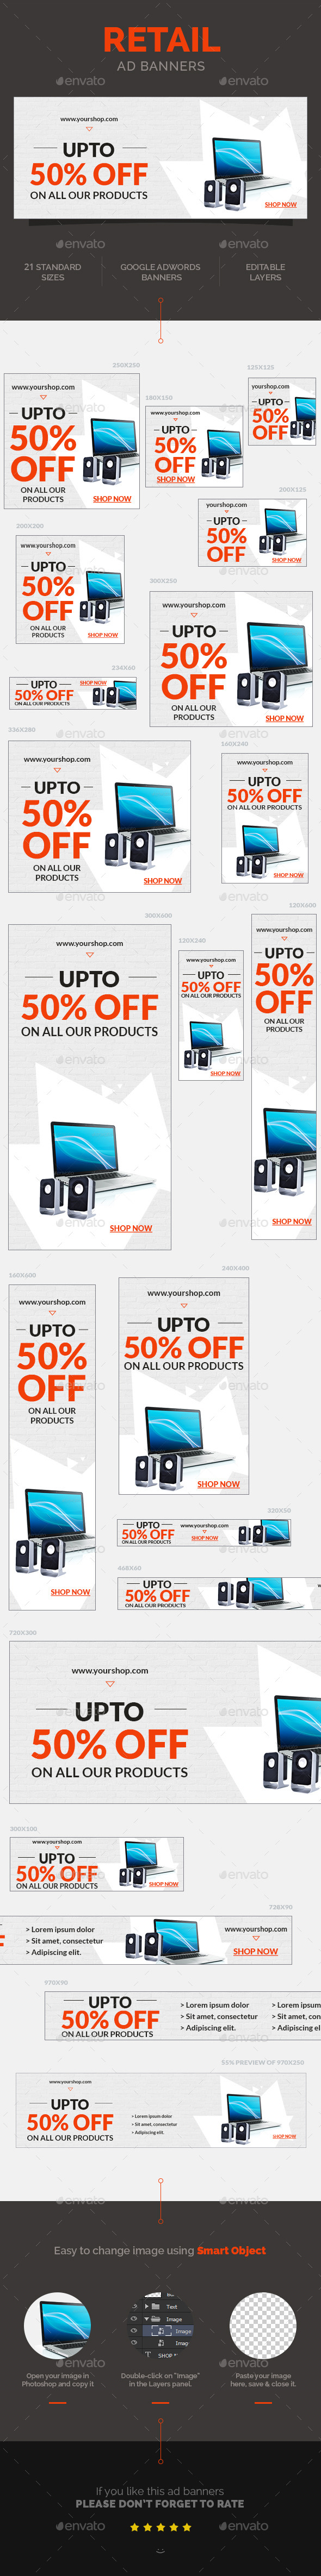 Retail Ad Banners - Banners & Ads Web Elements